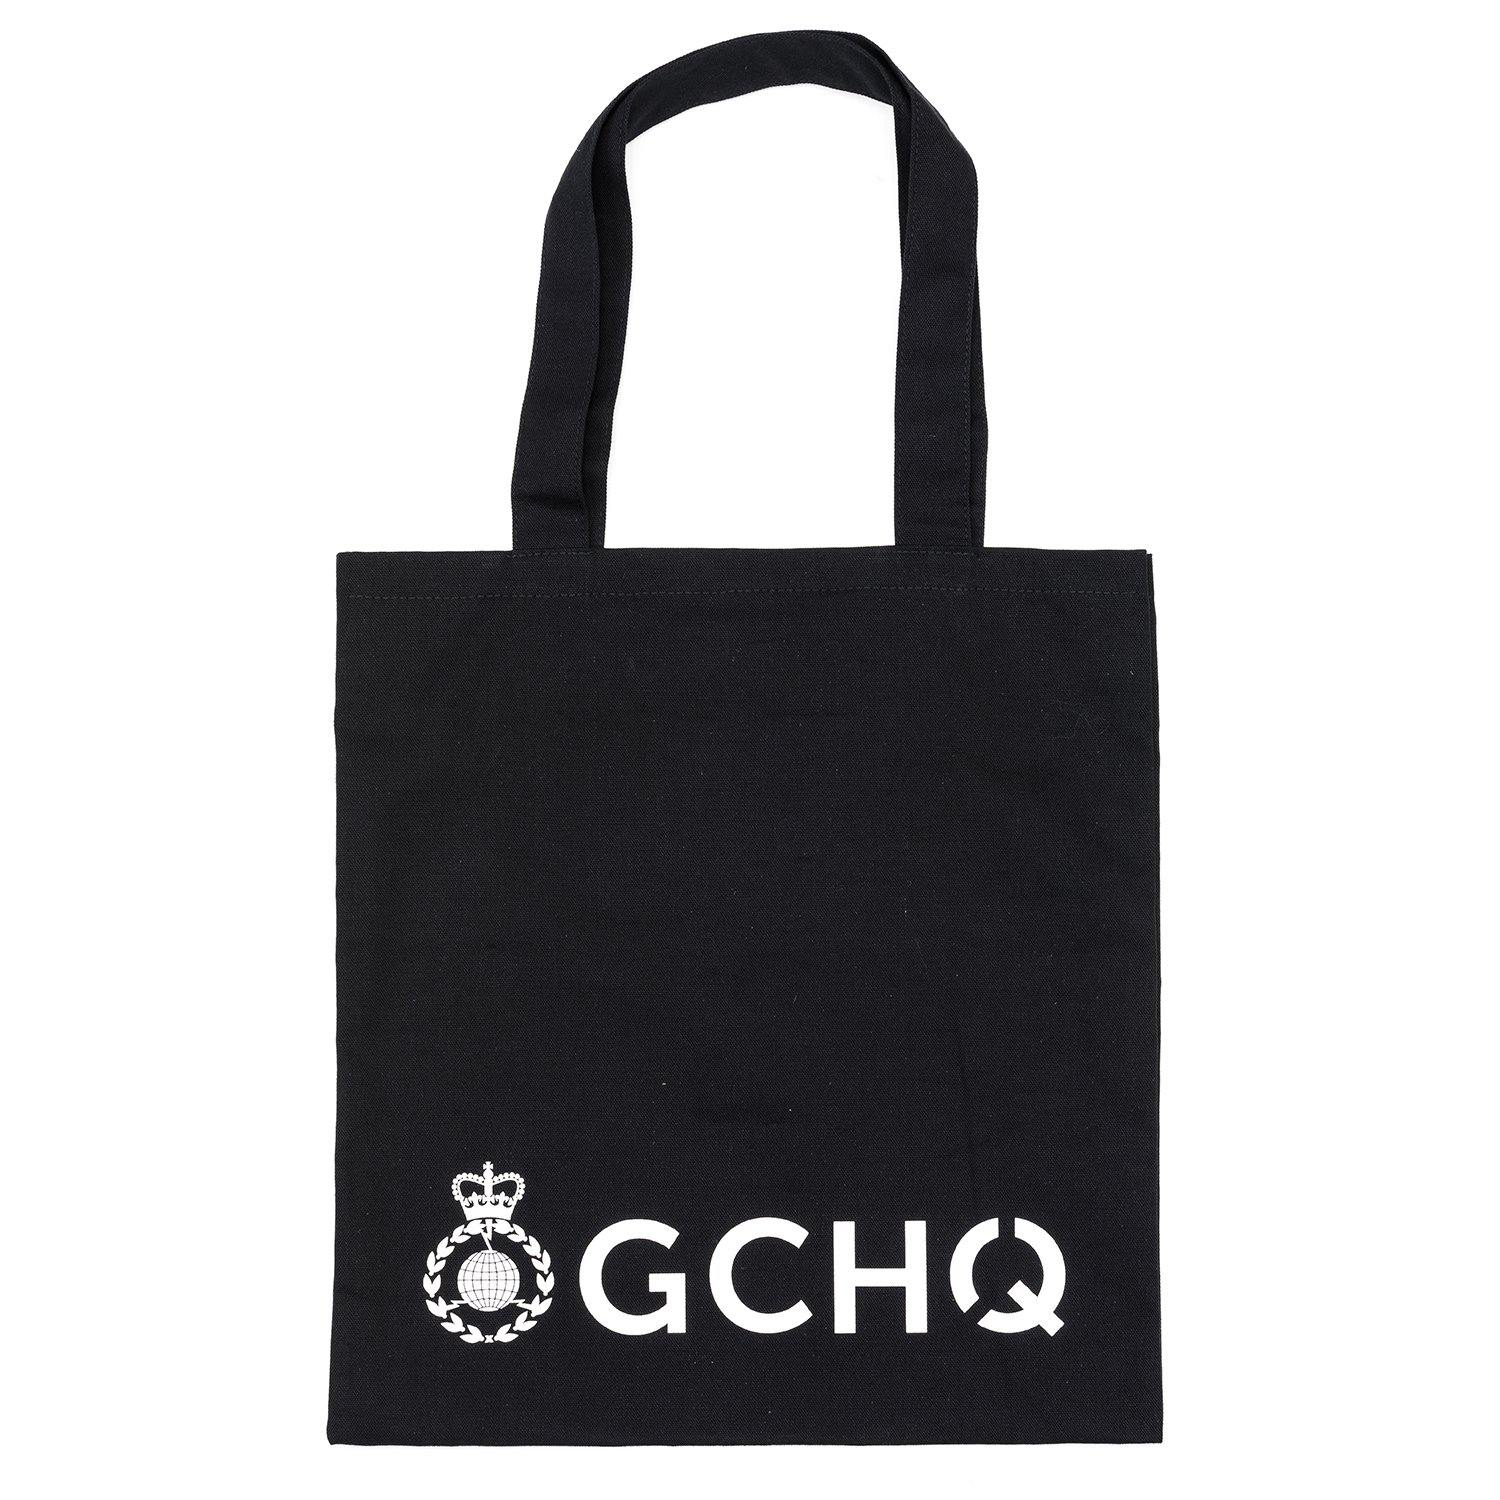 Science Museum GCHQ Tote Bag